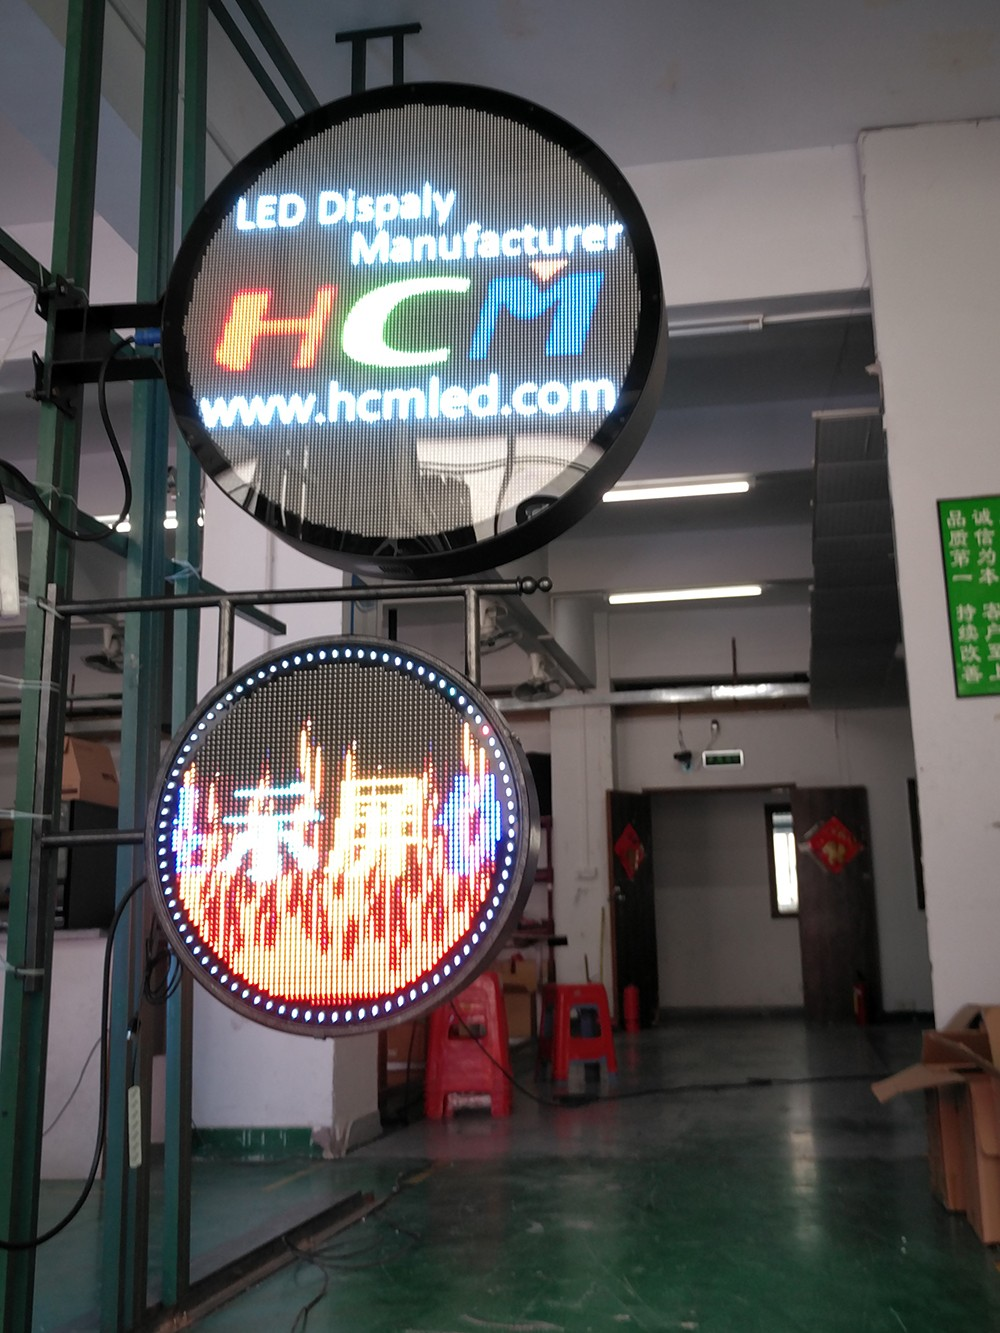 Hcmled P6 Circular Video Display Outdoor Round Tv Screen Led Display Shenzhen Hechuangmei